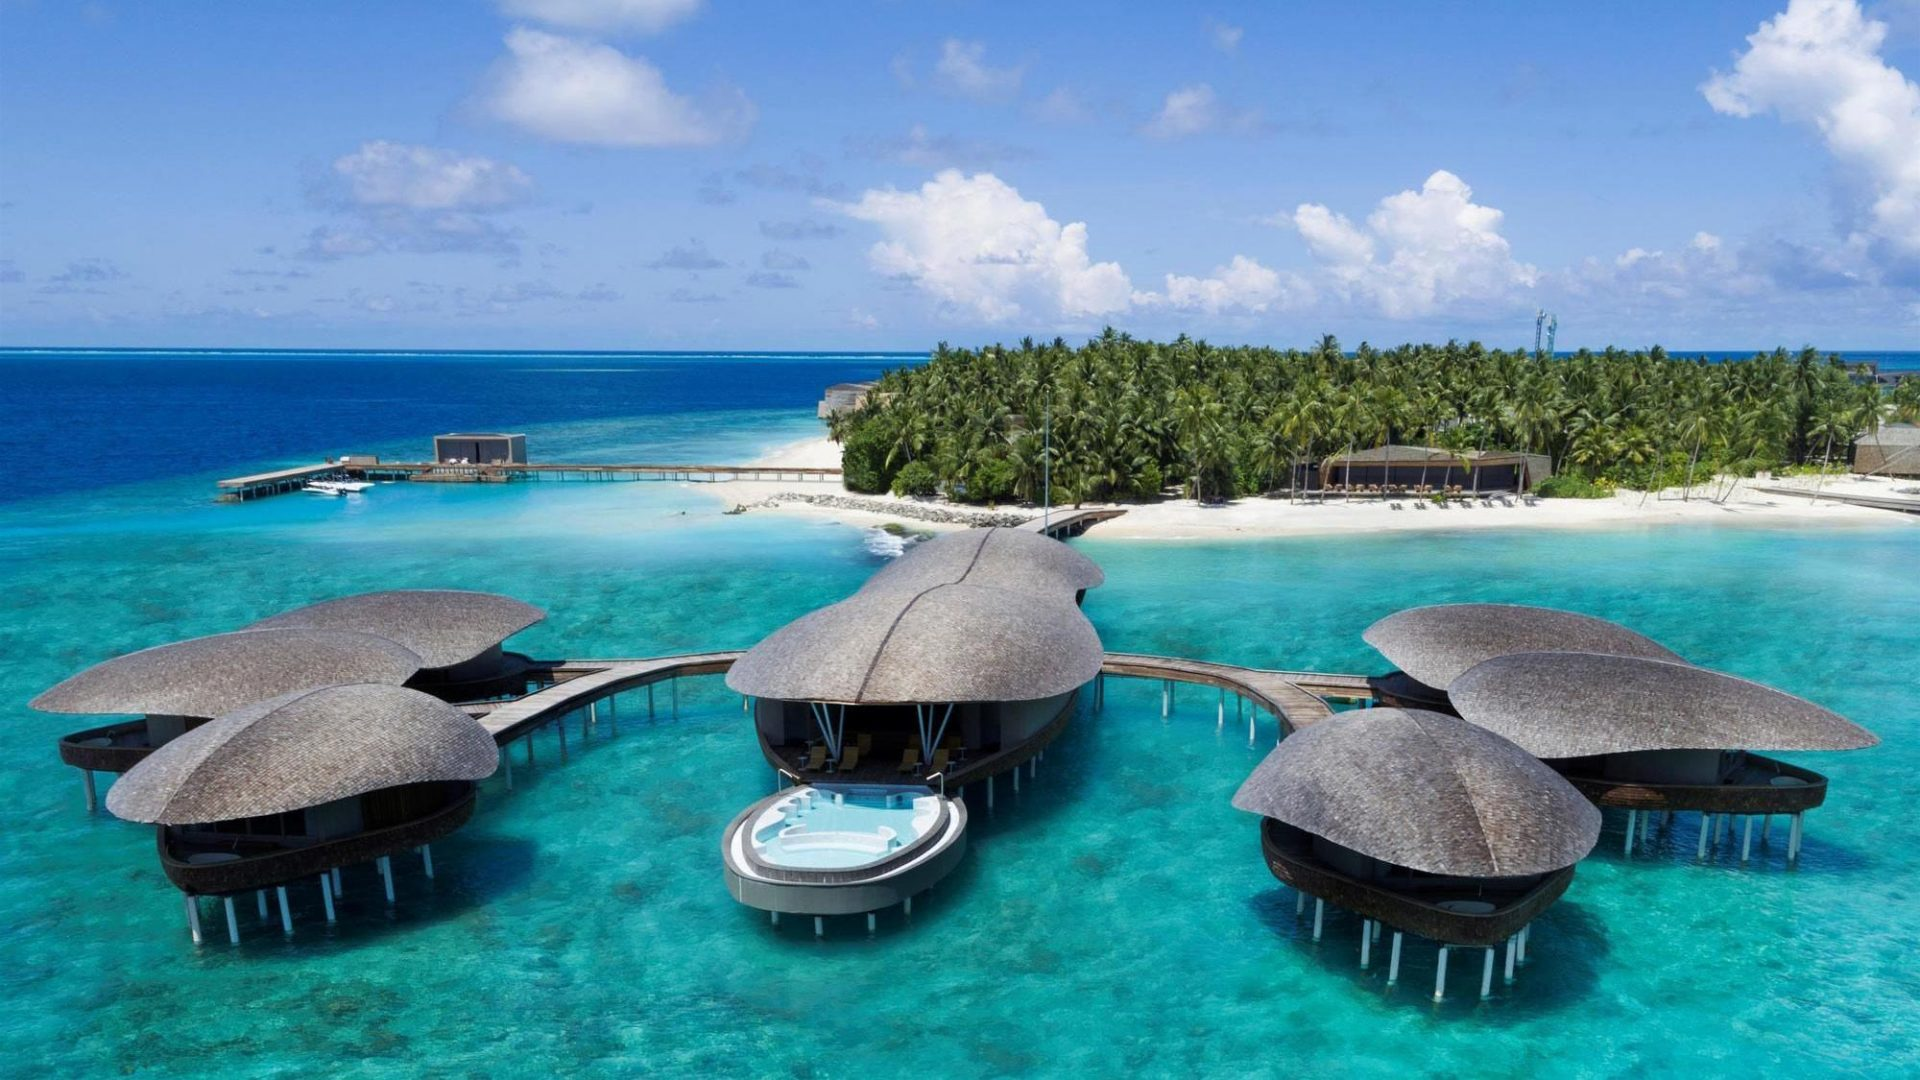 The St. Regis Maldives Vommuli Resort exterior